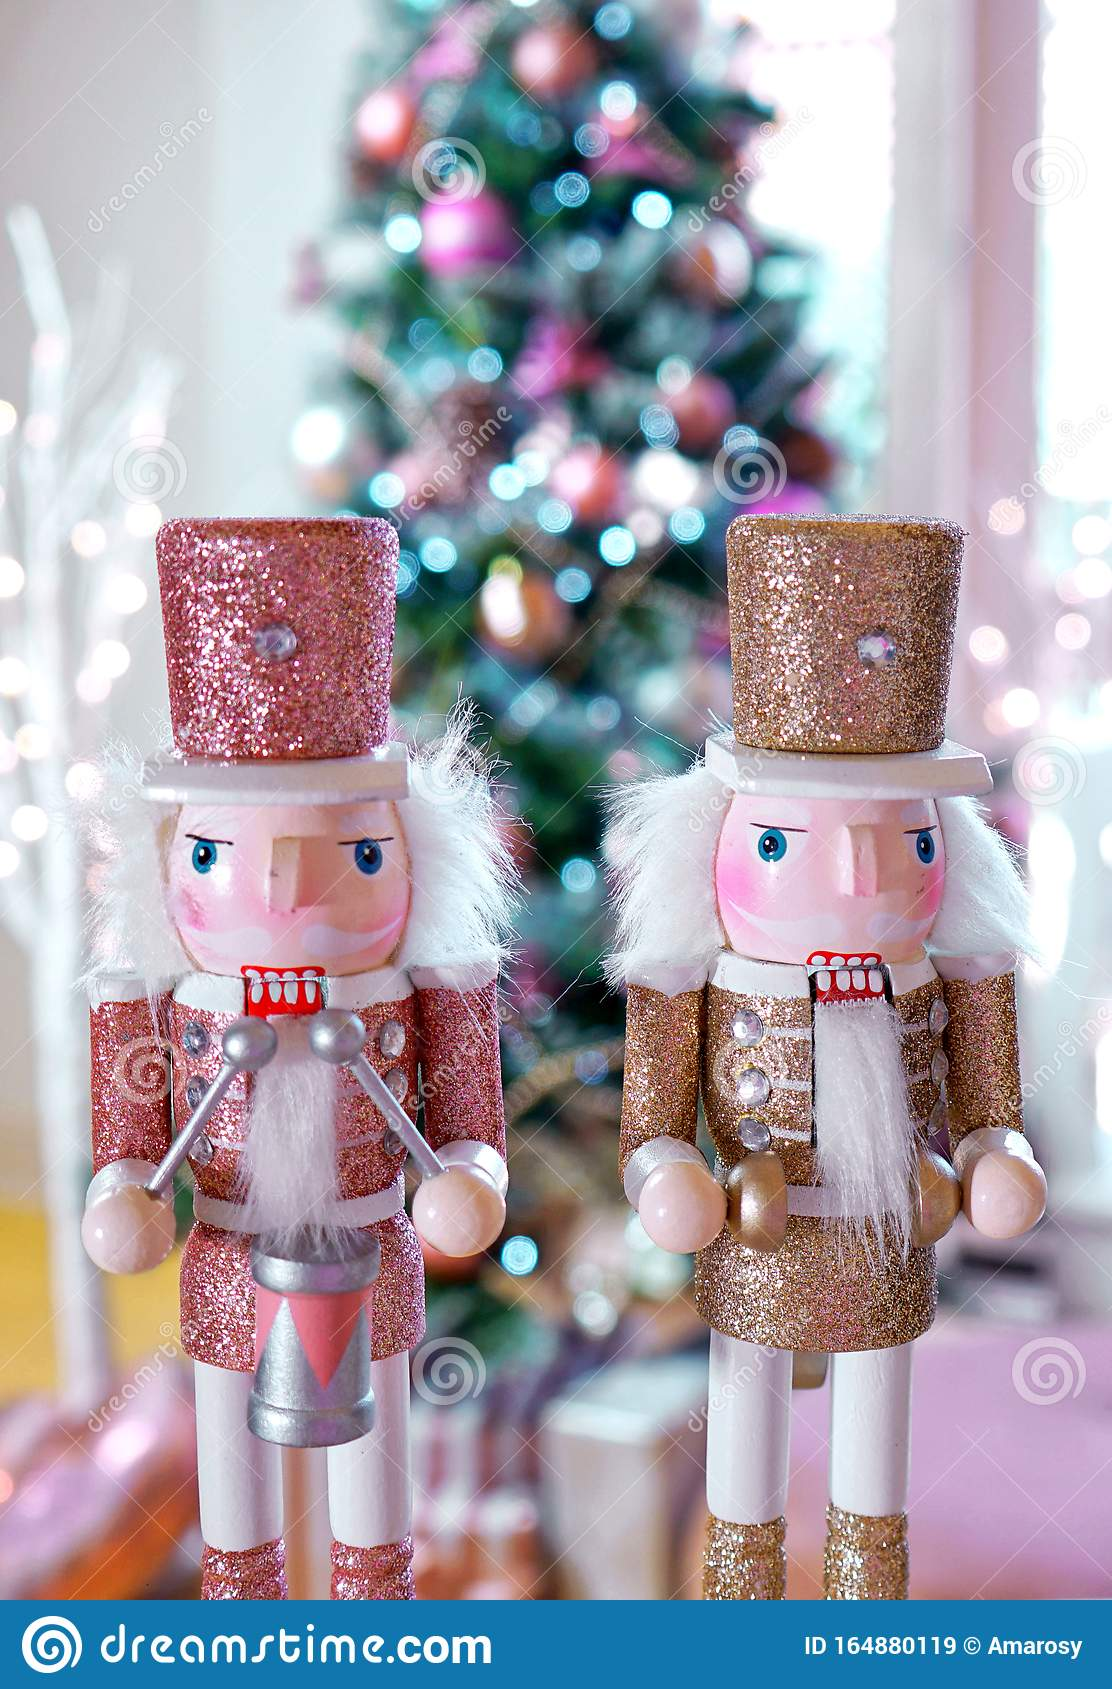 On Trend Pink And Rose Gold Trimmed Christmas Tree With Tray For Santa Stock Image Image Of Object December 164880119